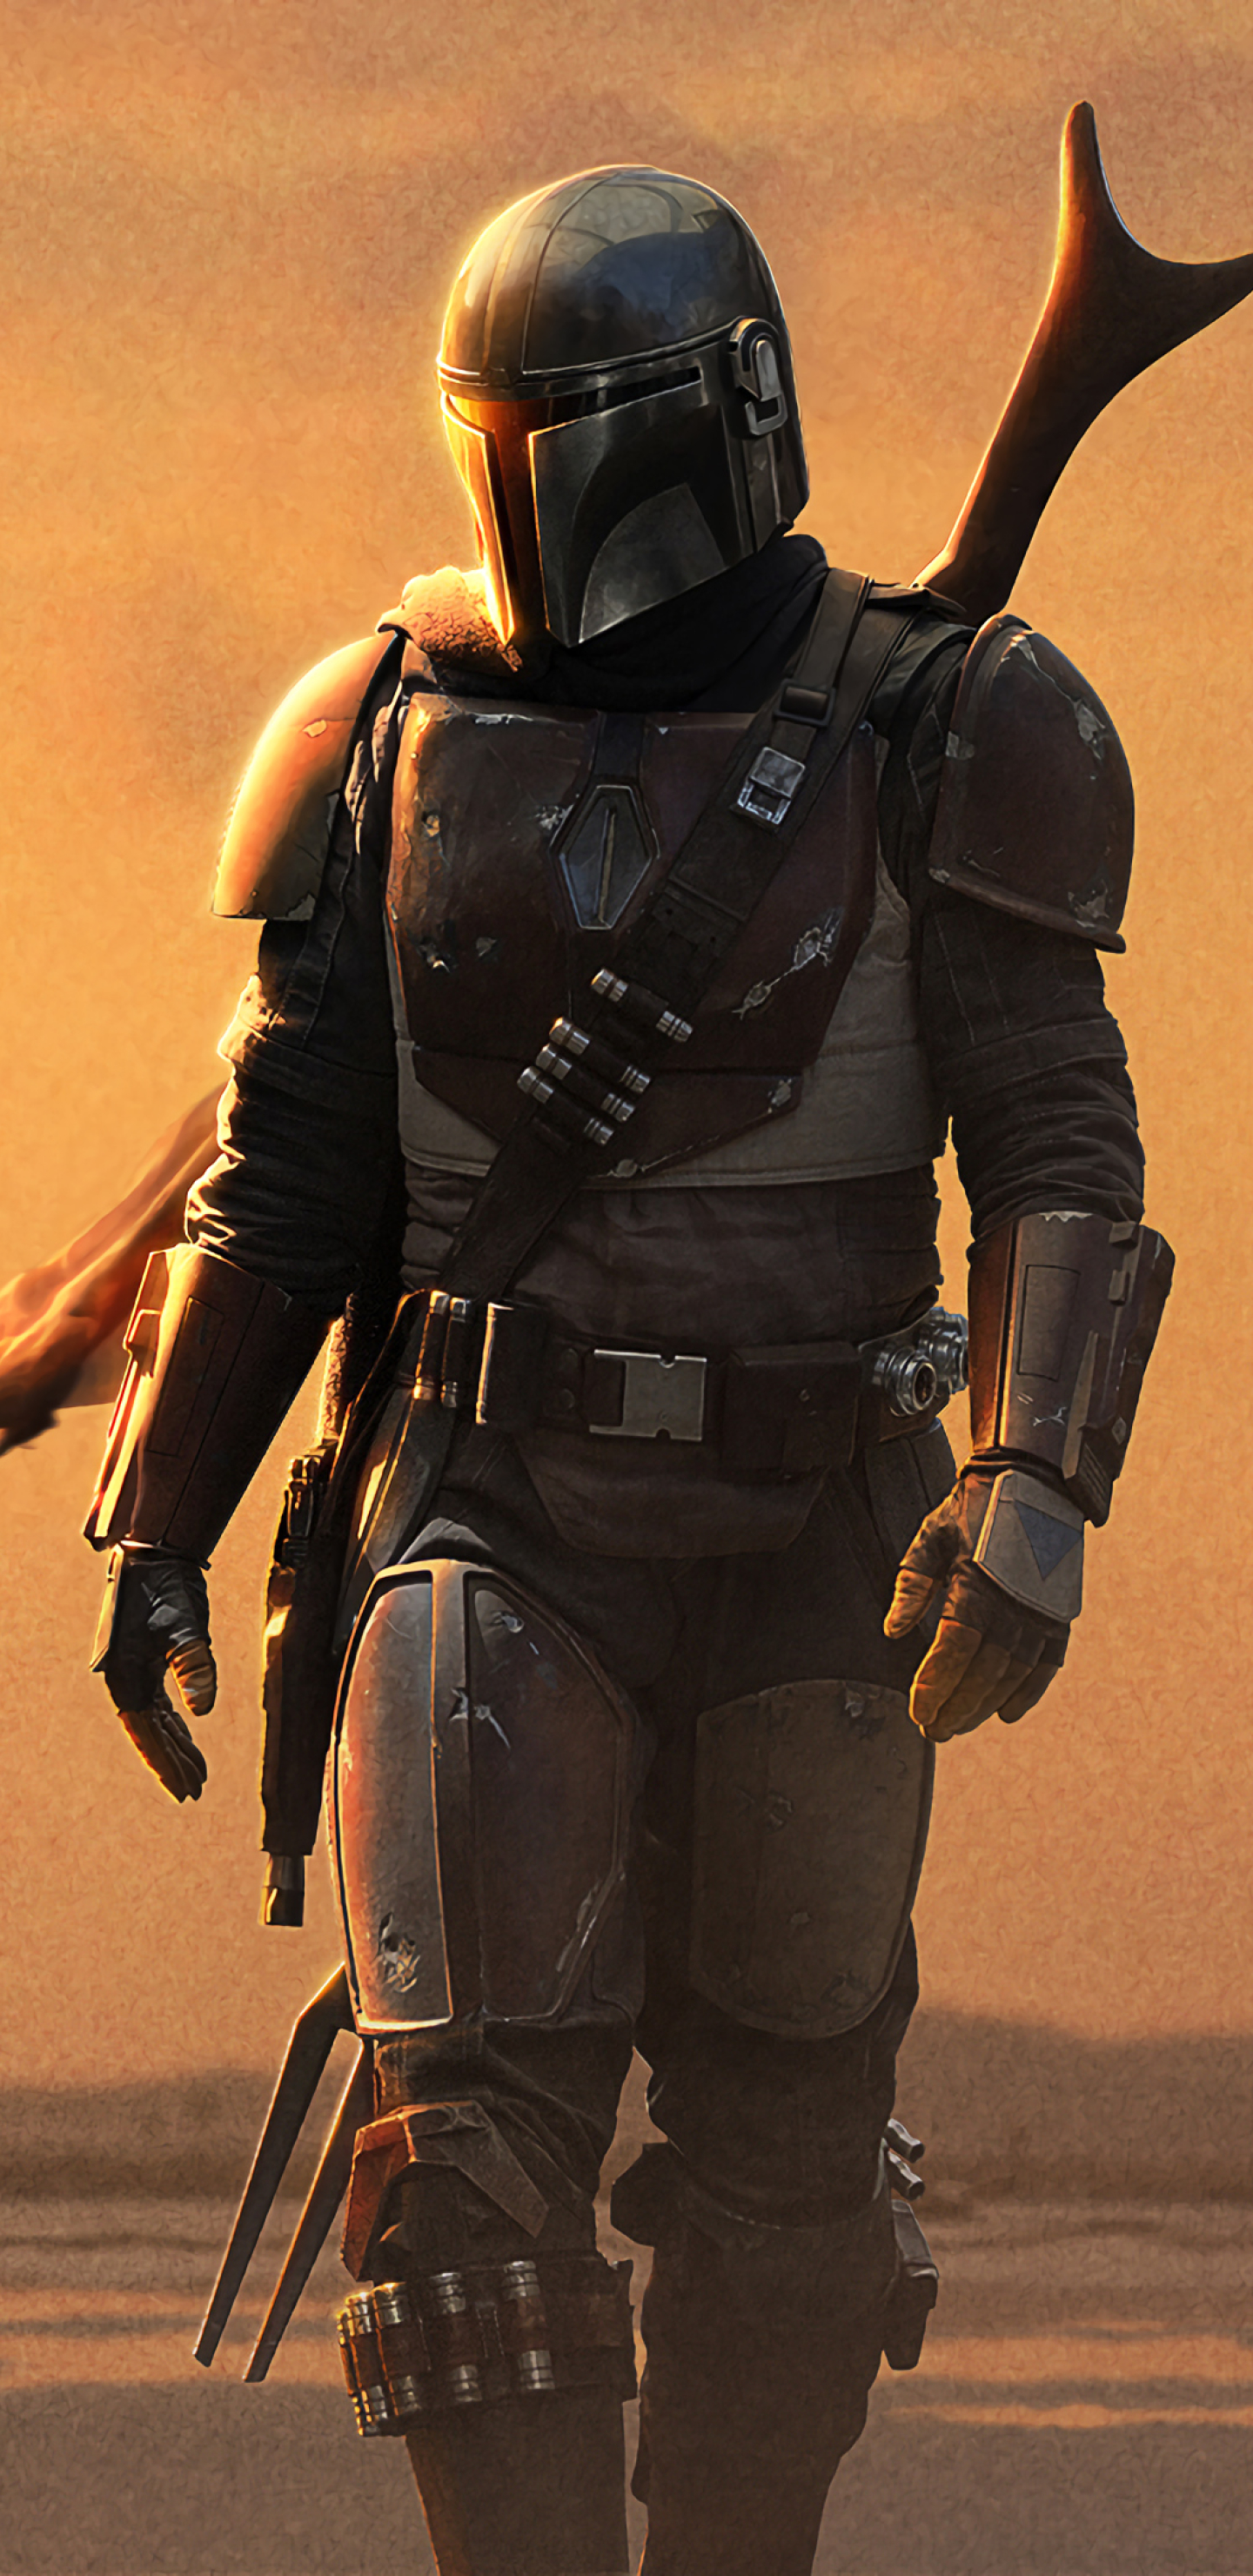 1440x2960 4k Poster Of The Mandalorian Samsung Galaxy Note ...